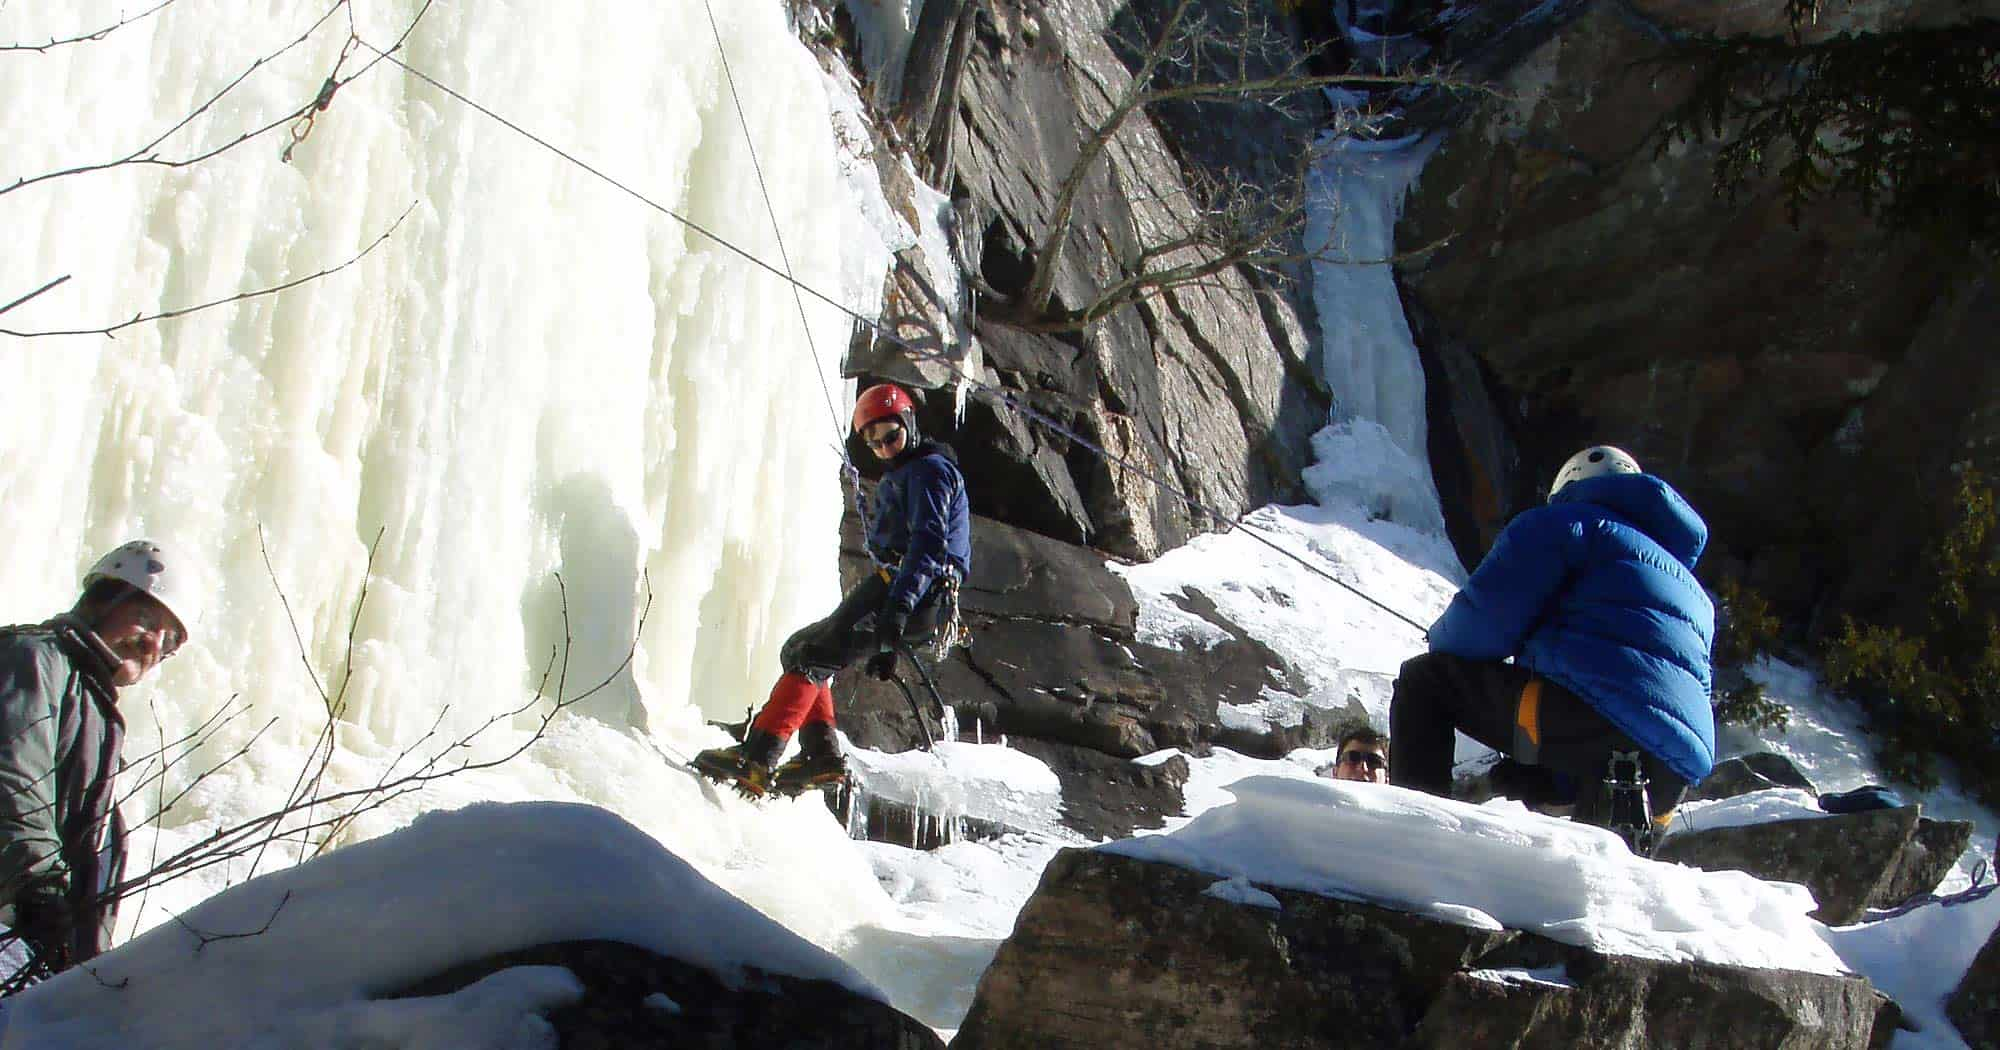 Three ice climbers at the base of a cliff